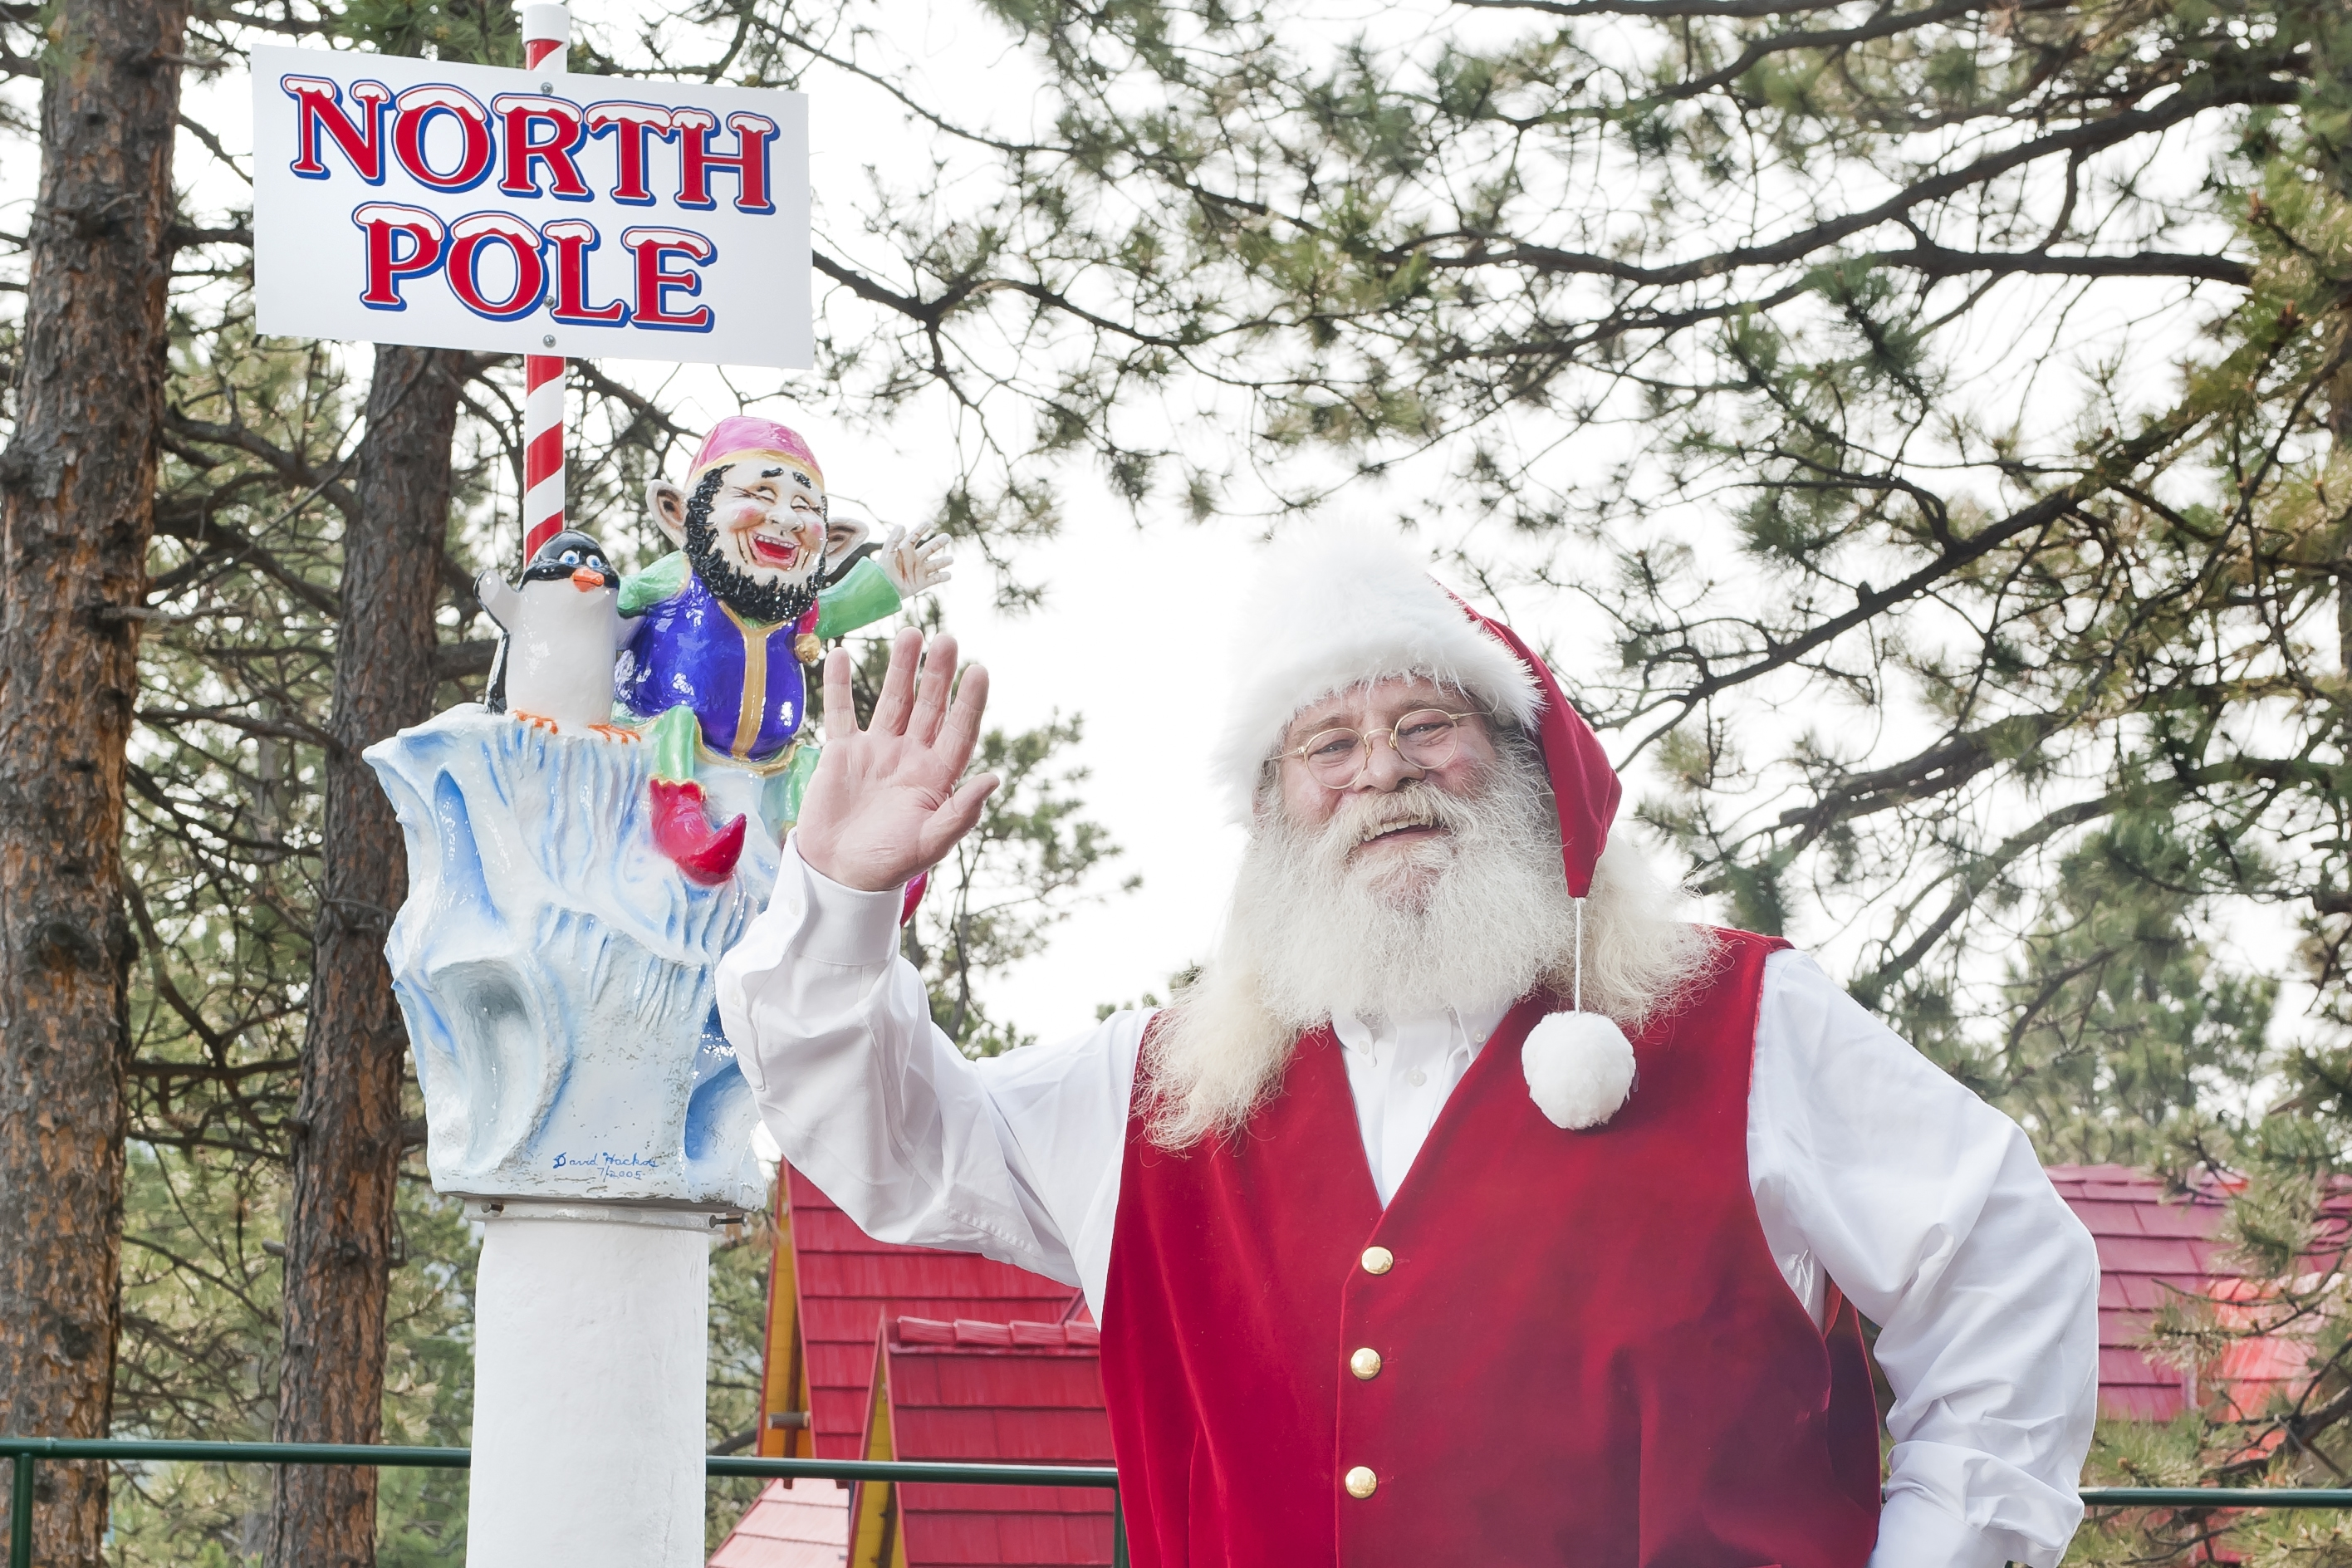 North Pole, Home of Santa's Workshop